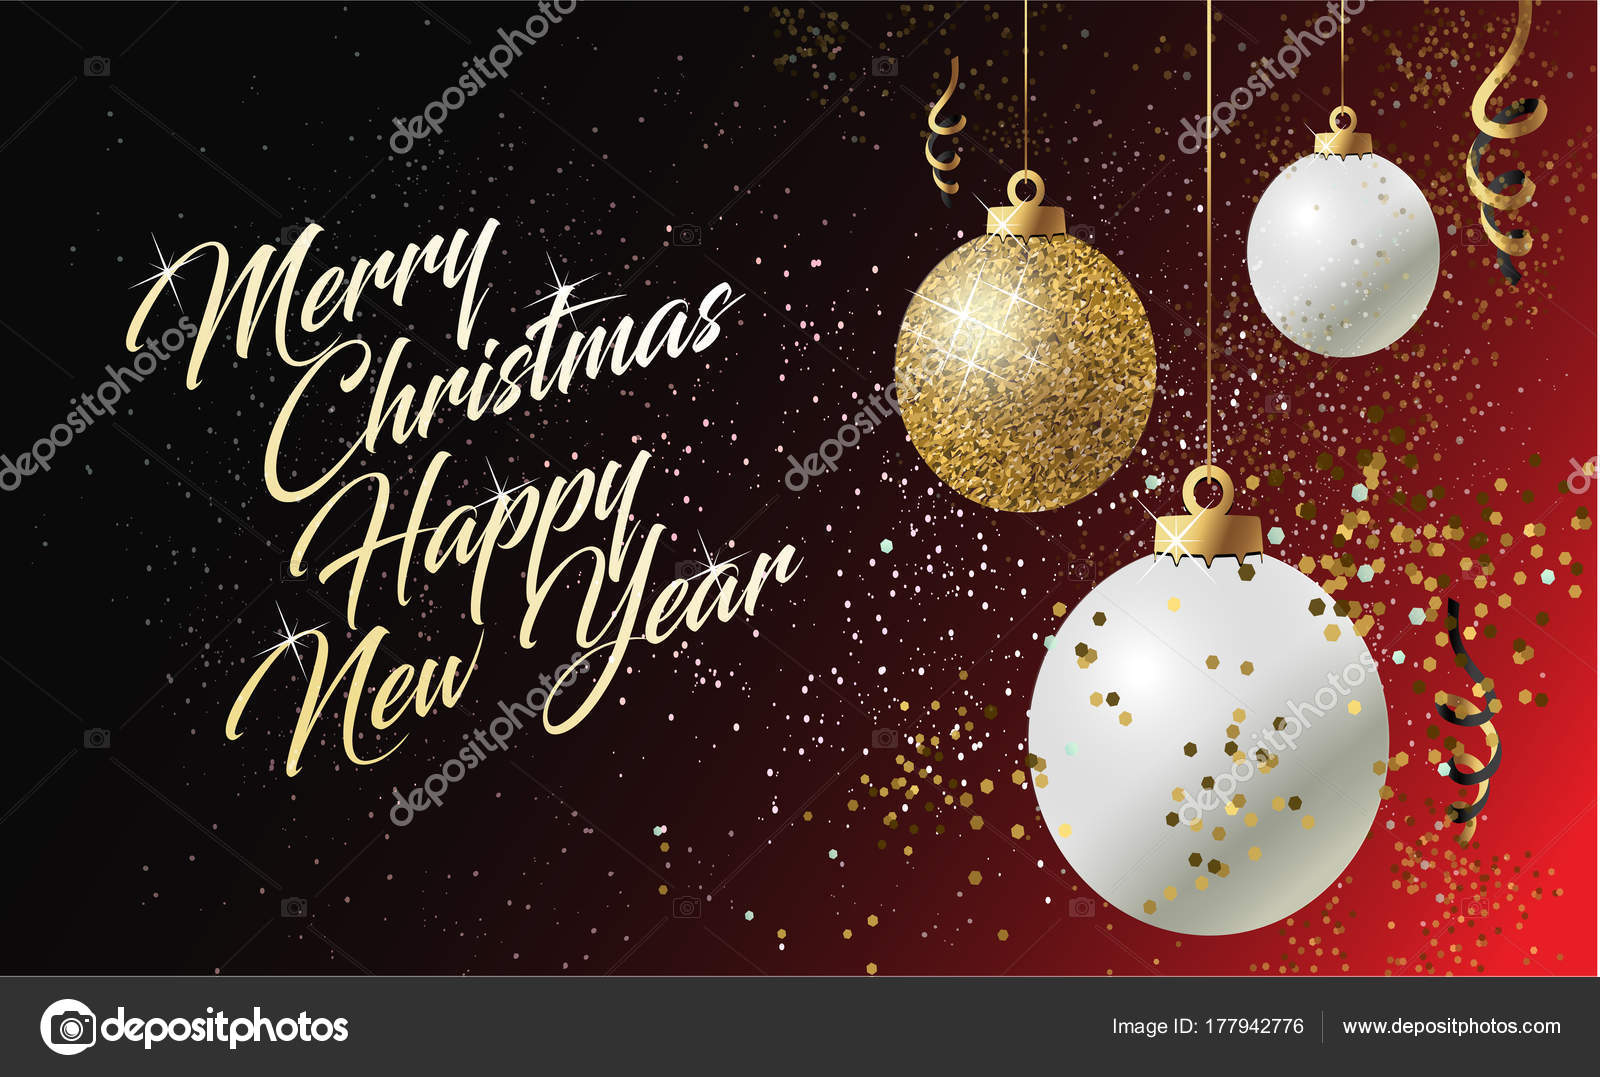 Merry Christmas Poster 2018.2018 Merry Christmas Happy New Year Card Greeting Winter